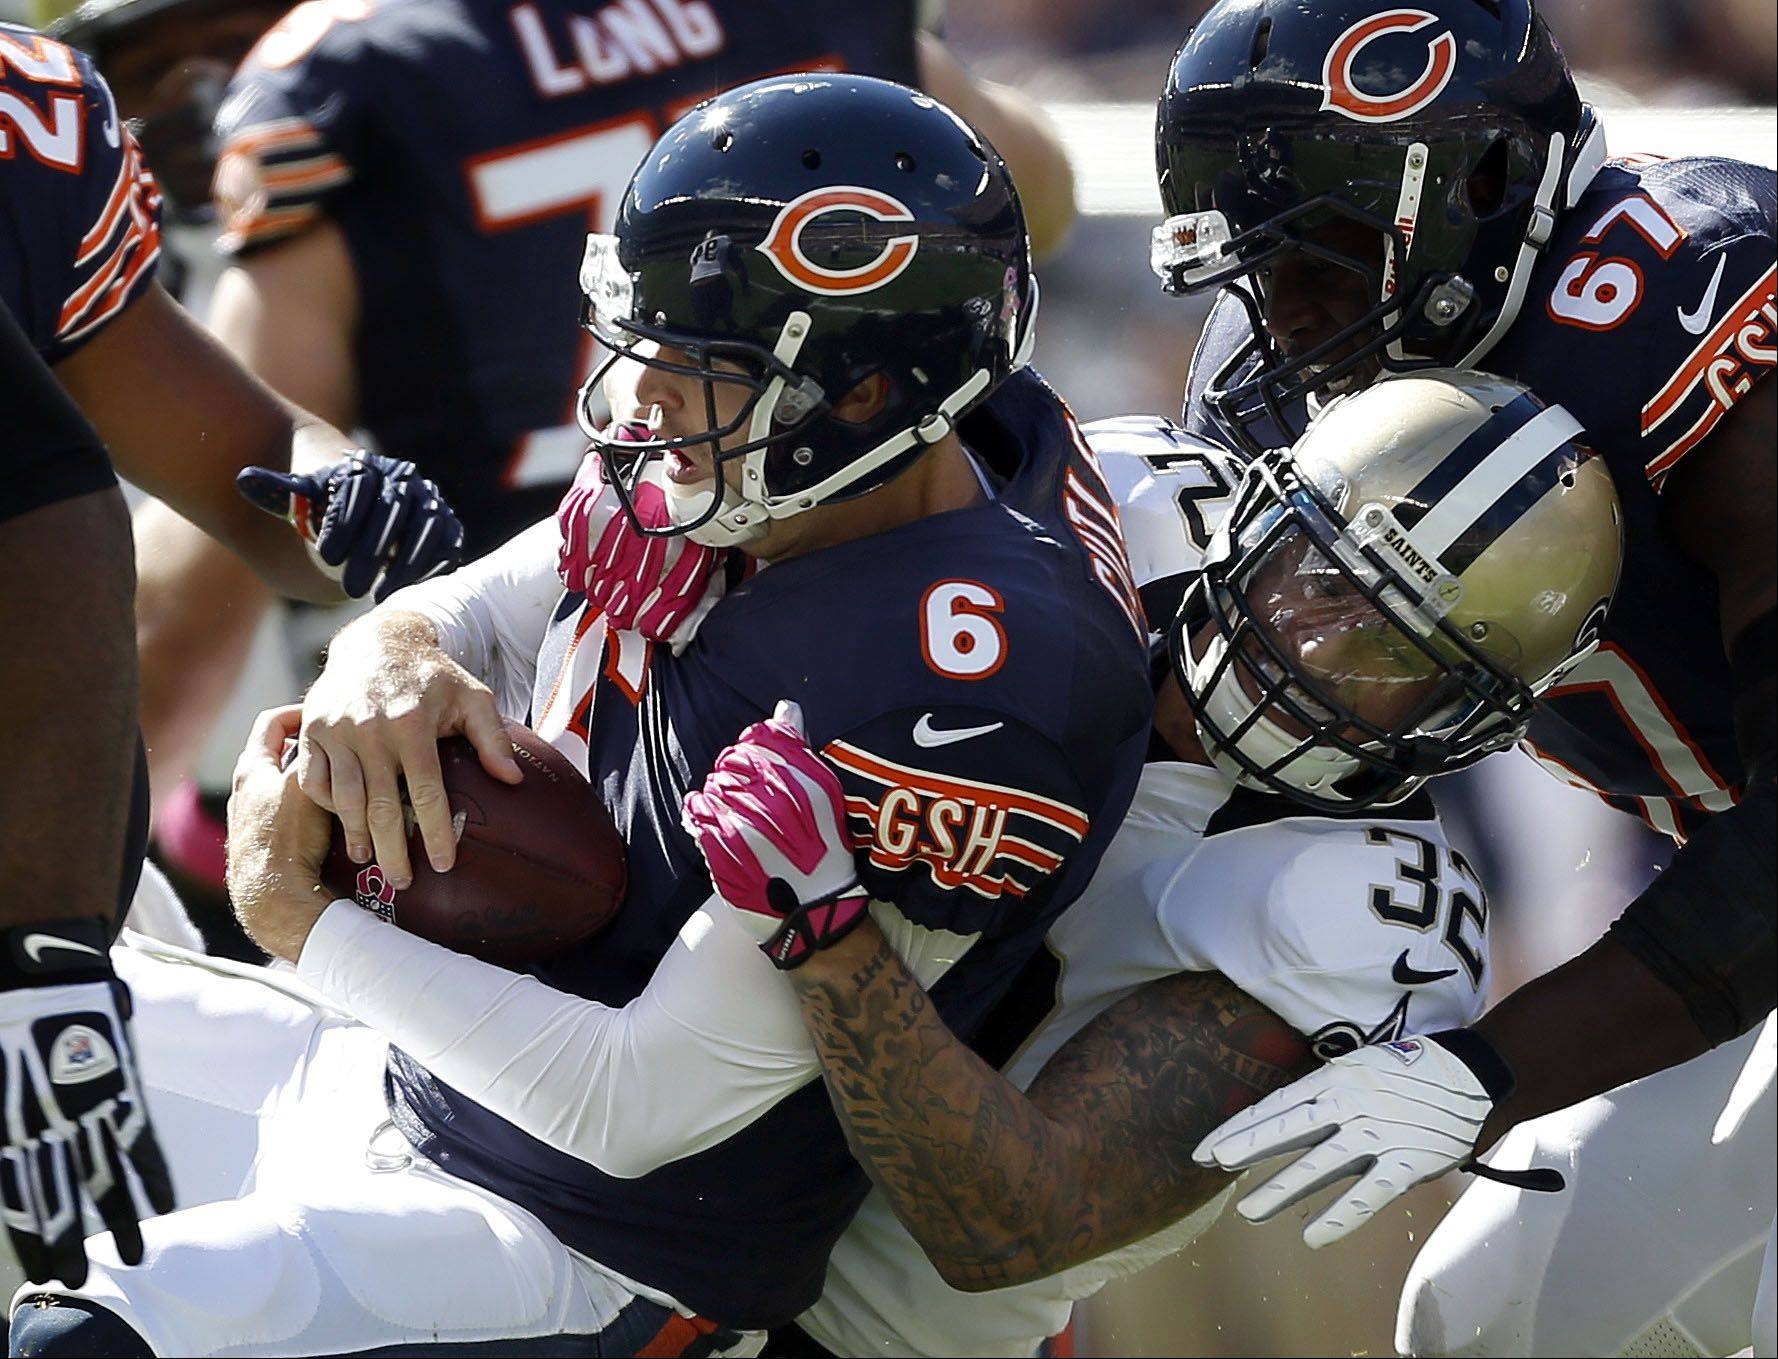 Chicago Bears quarterback Jay Cutler is sacked by New Orleans Saints strong safety Kenny Vaccaro during the Bears 26-18 loss Sunday at Soldier Field in Chicago.